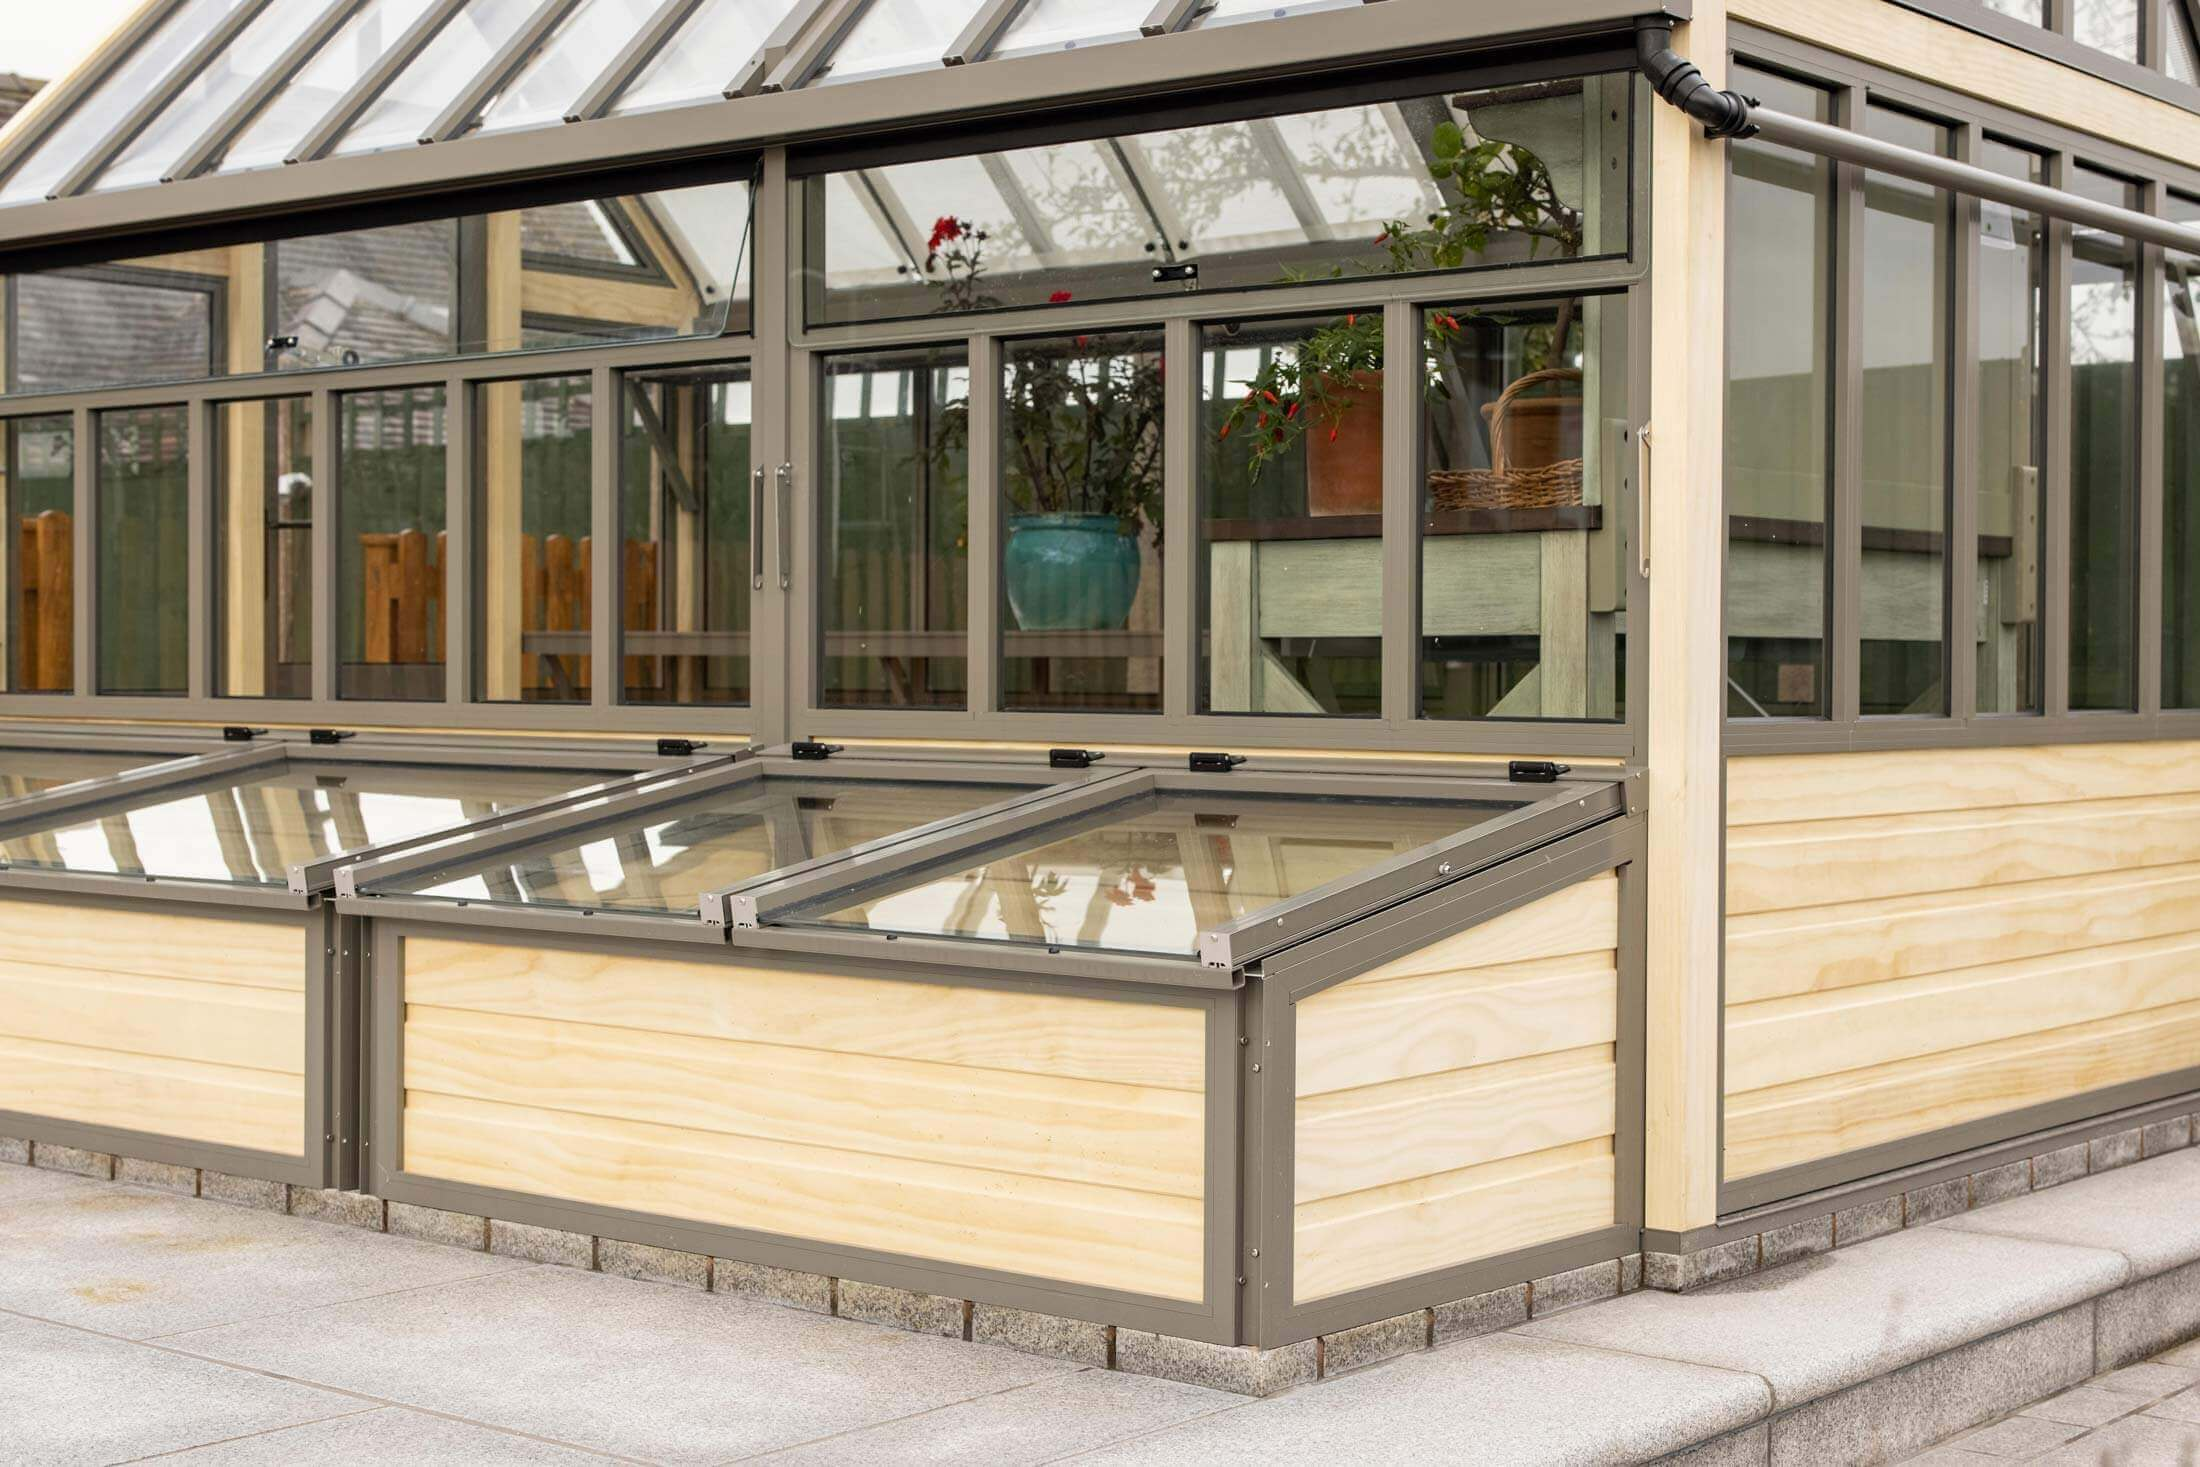 Victorian greenhouse with coldframe